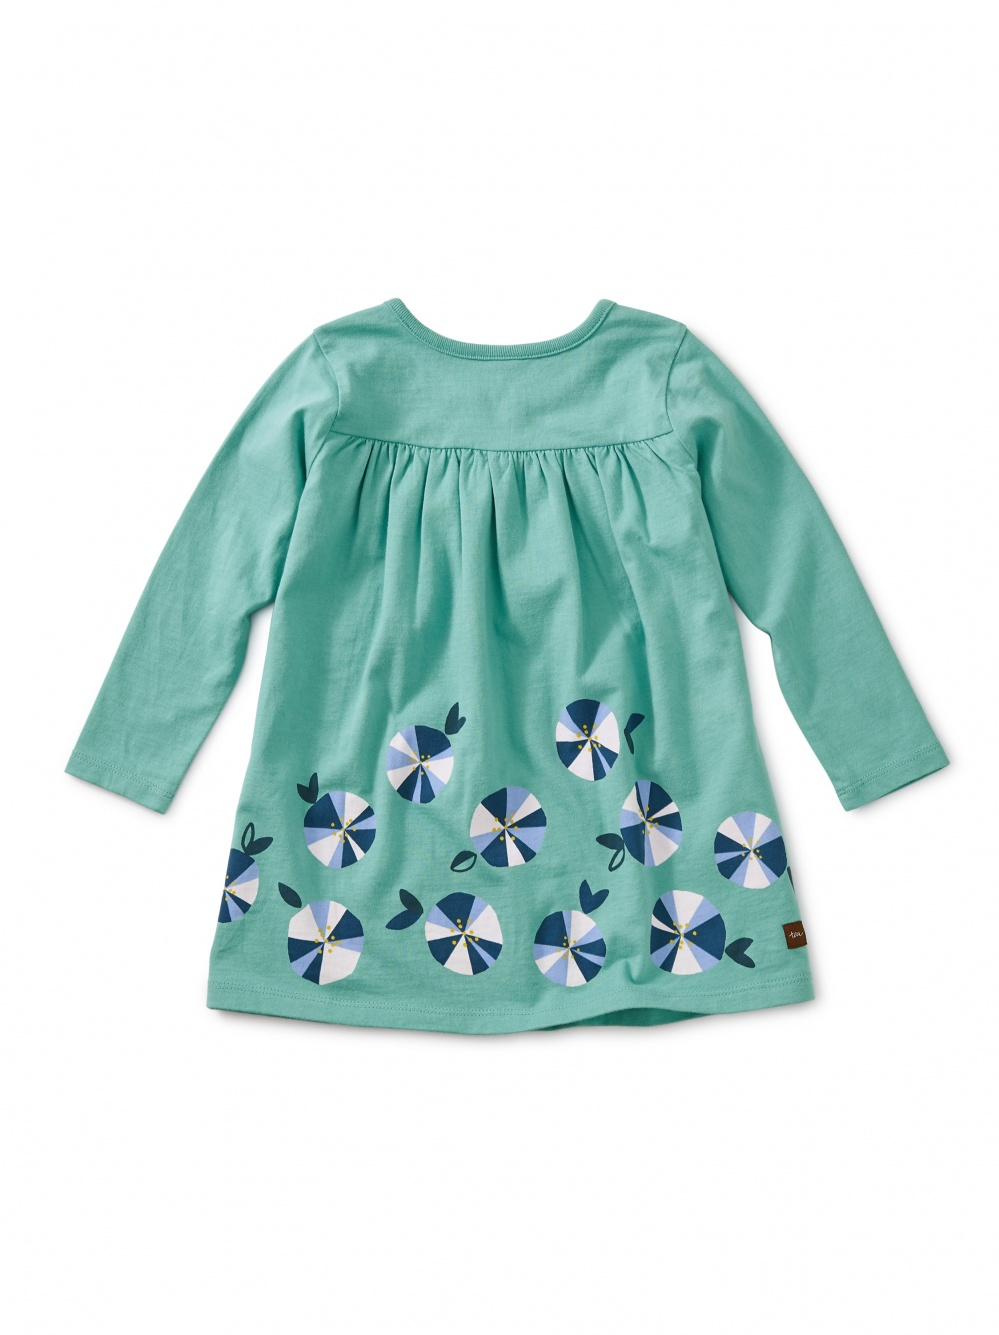 Rainbow Floral Graphic Baby Dress